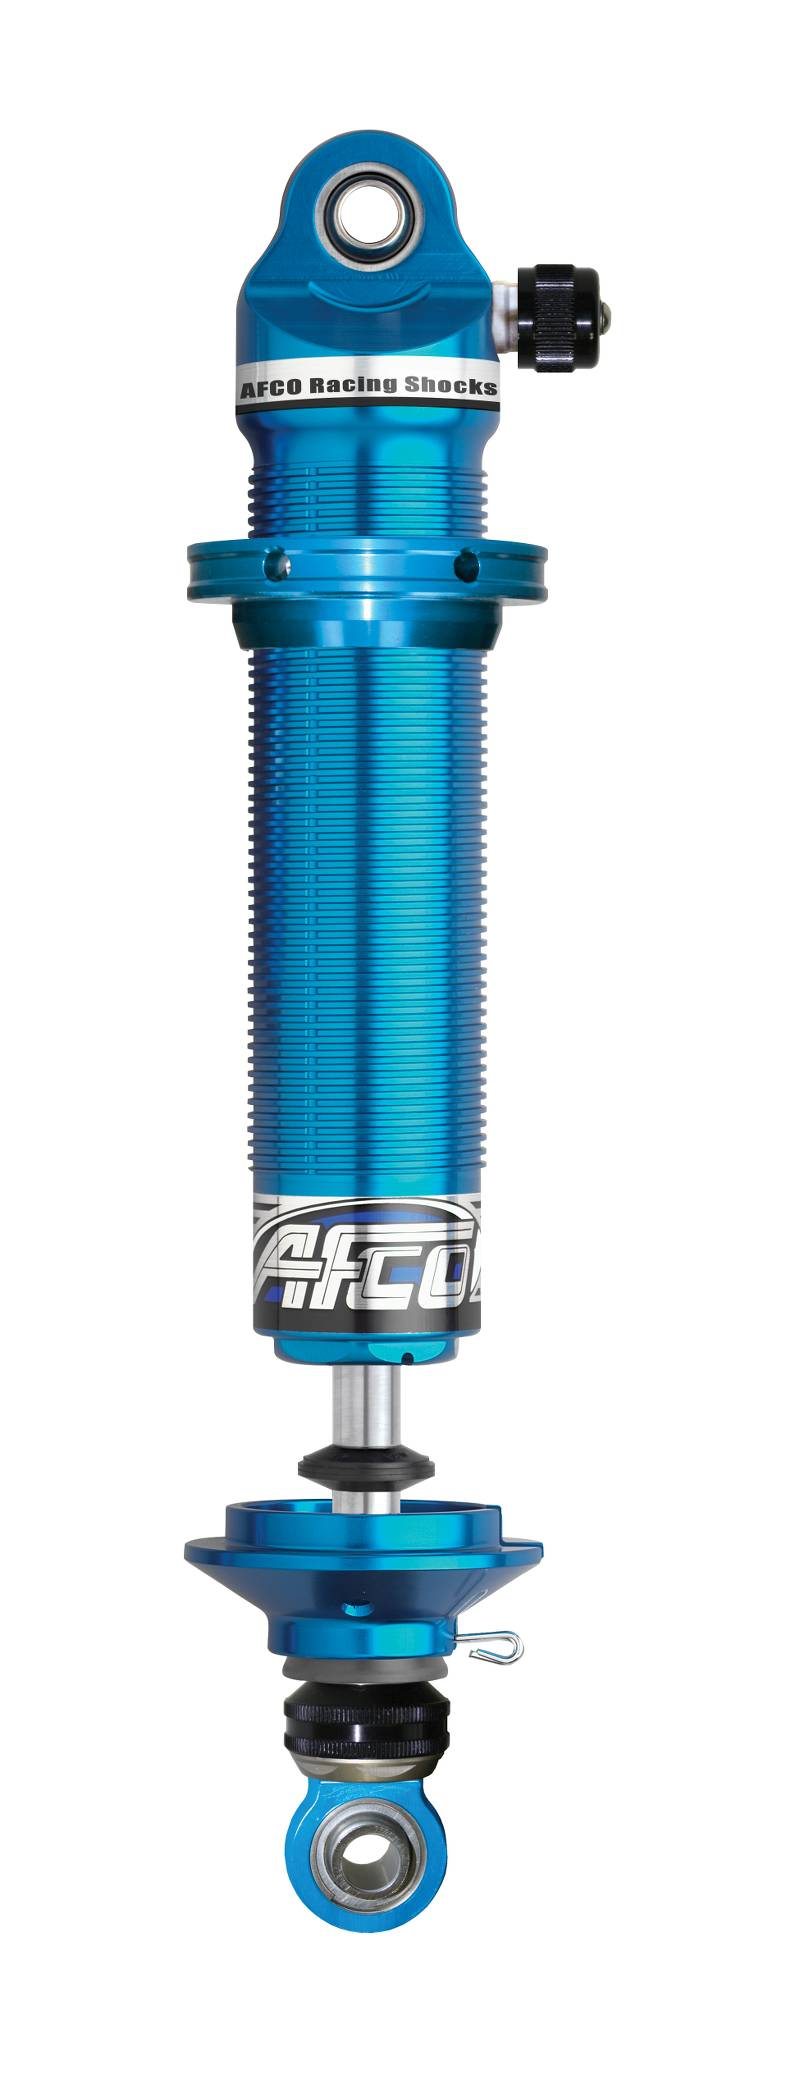 Aluminum Shock Twin Tube 37 Series Double Adjustable 6 Inch Stroke